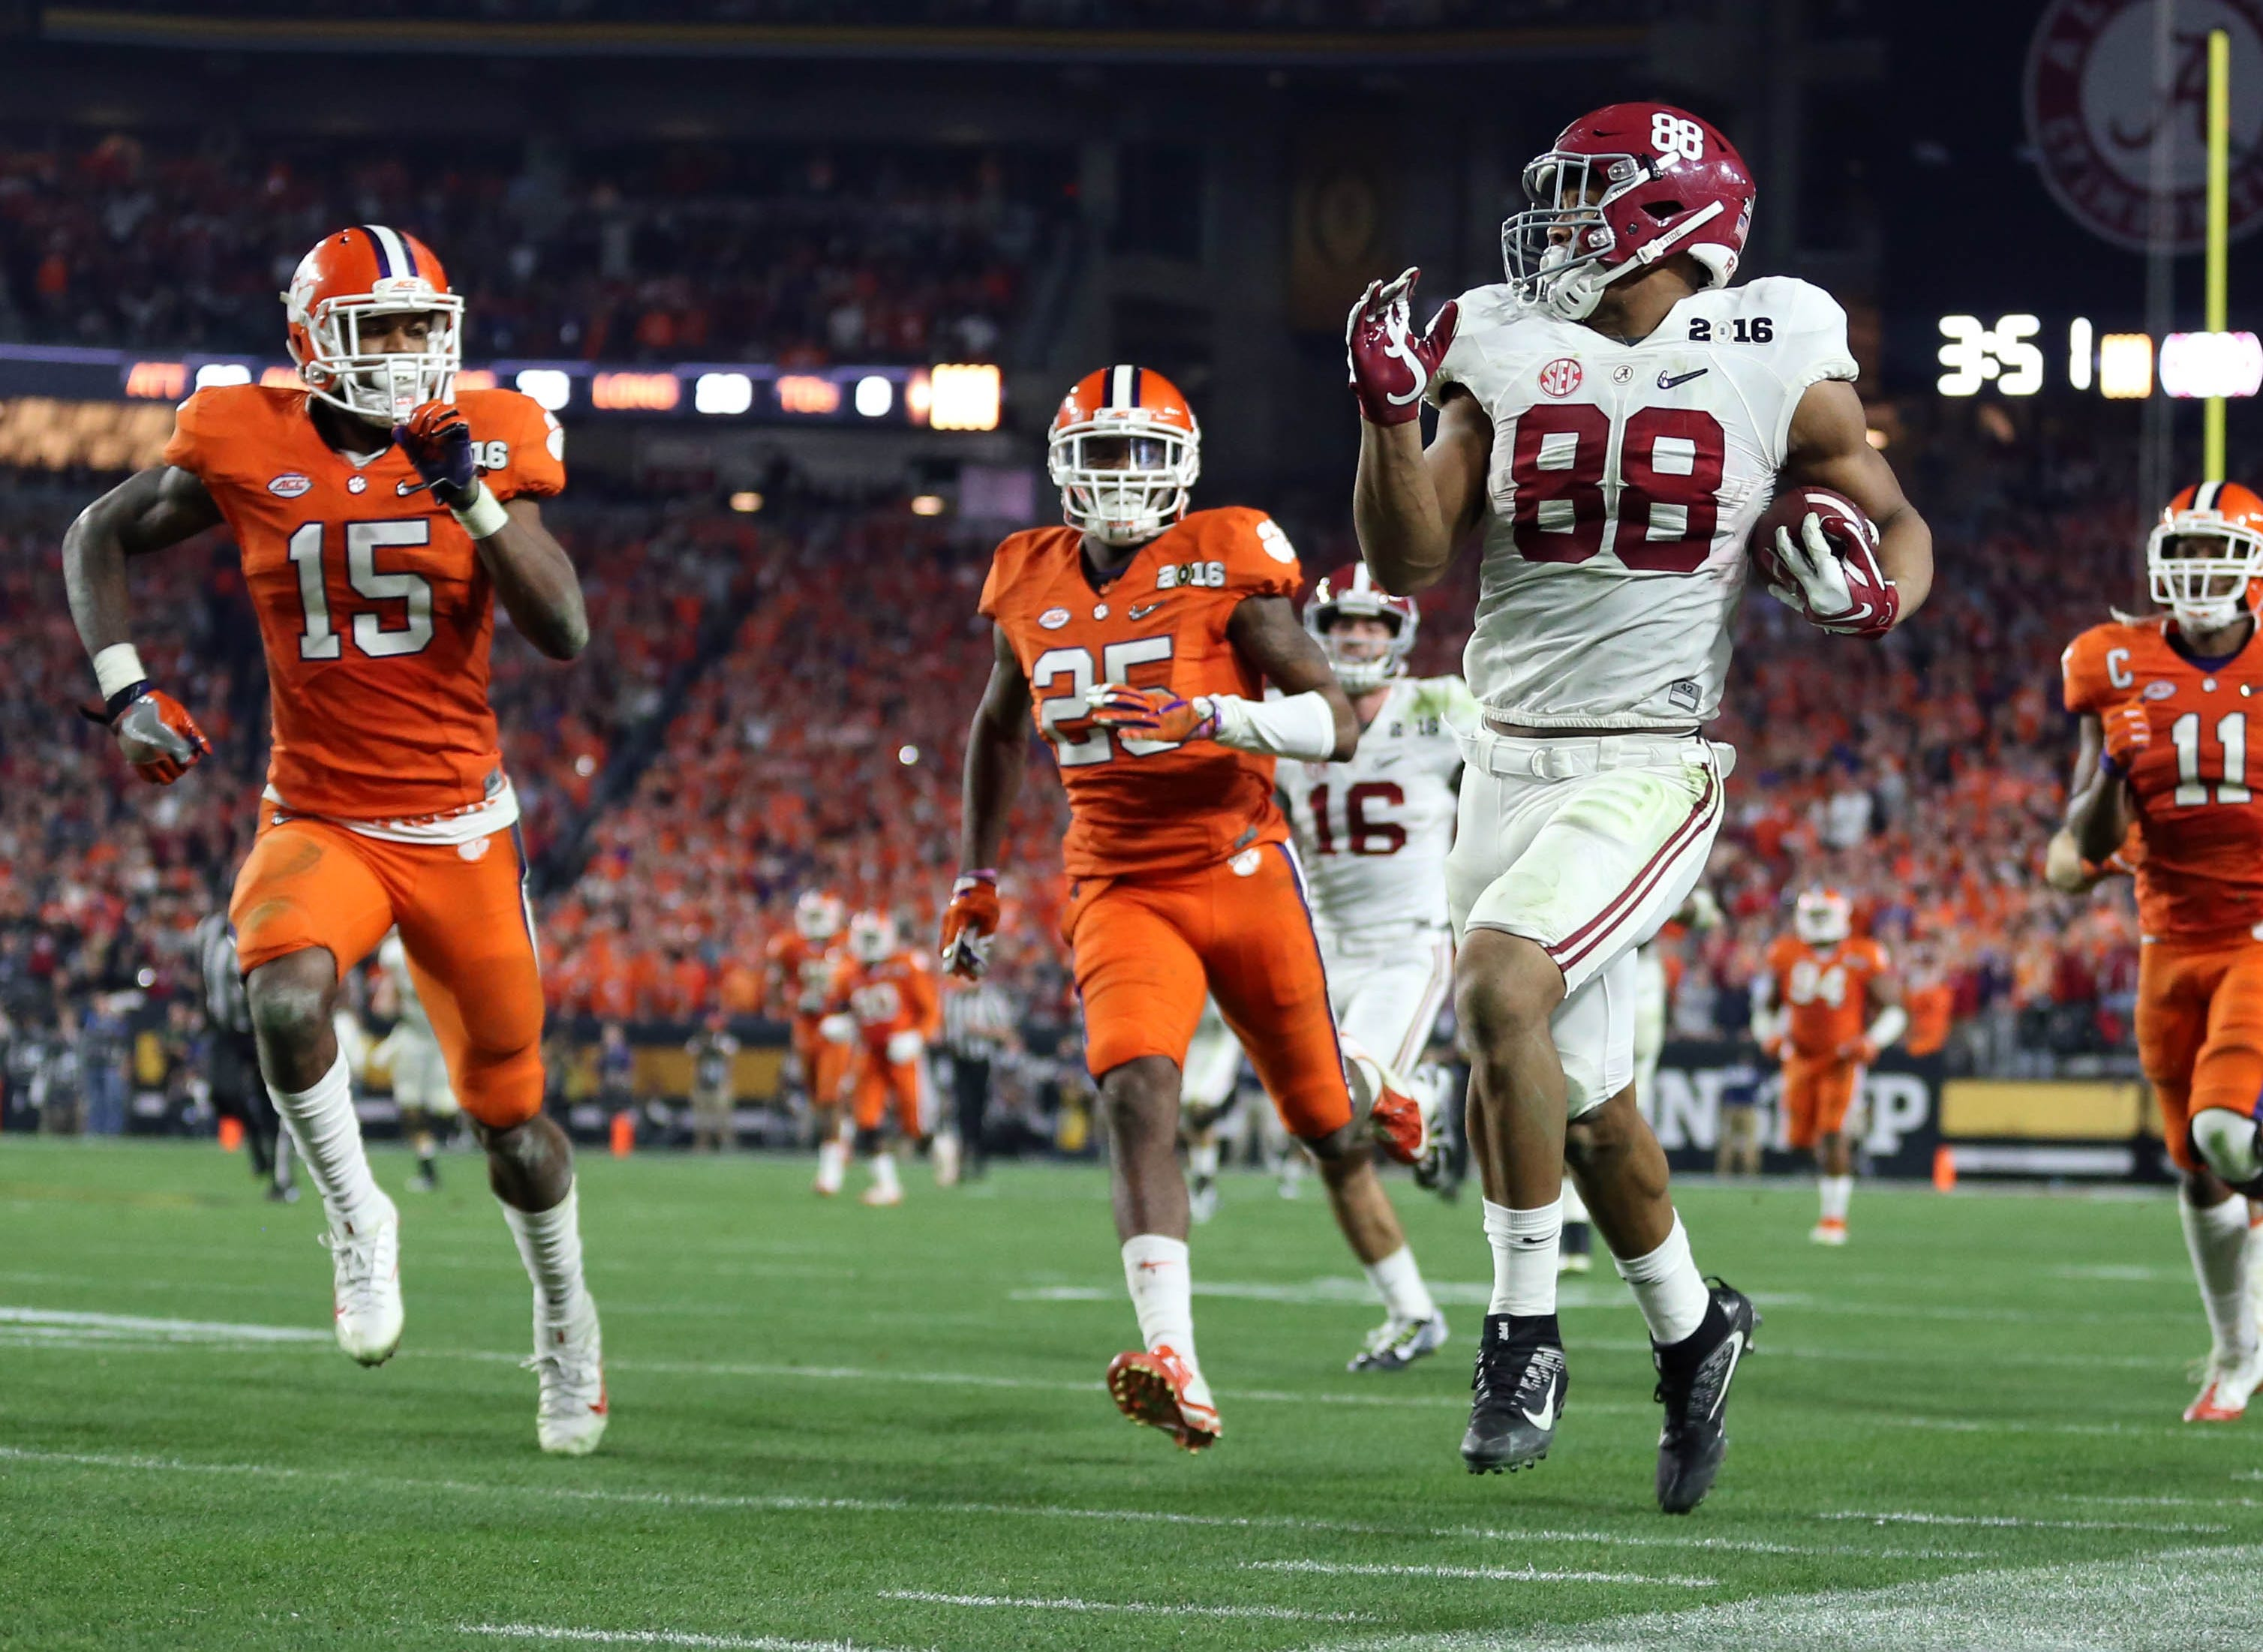 Alabama tight end O.J. Howard runs after a catch against Clemson in the College Football Playoff championship game during the 2015 season.